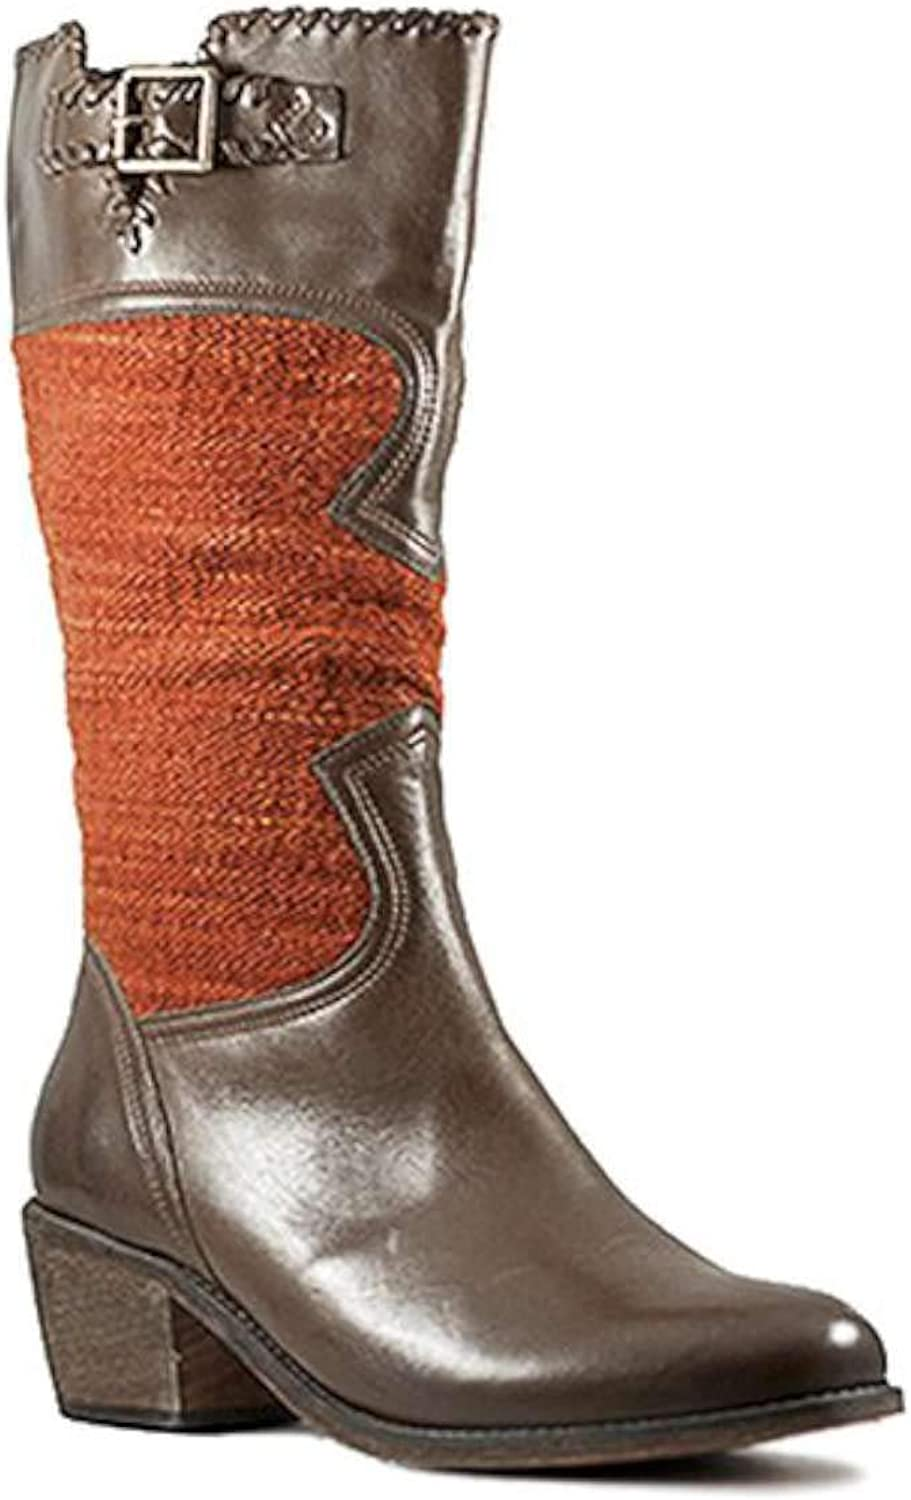 Fortress of Inca Womens Sienna Grace Leather Almond Toe Mid-Calf Cowboy Boots